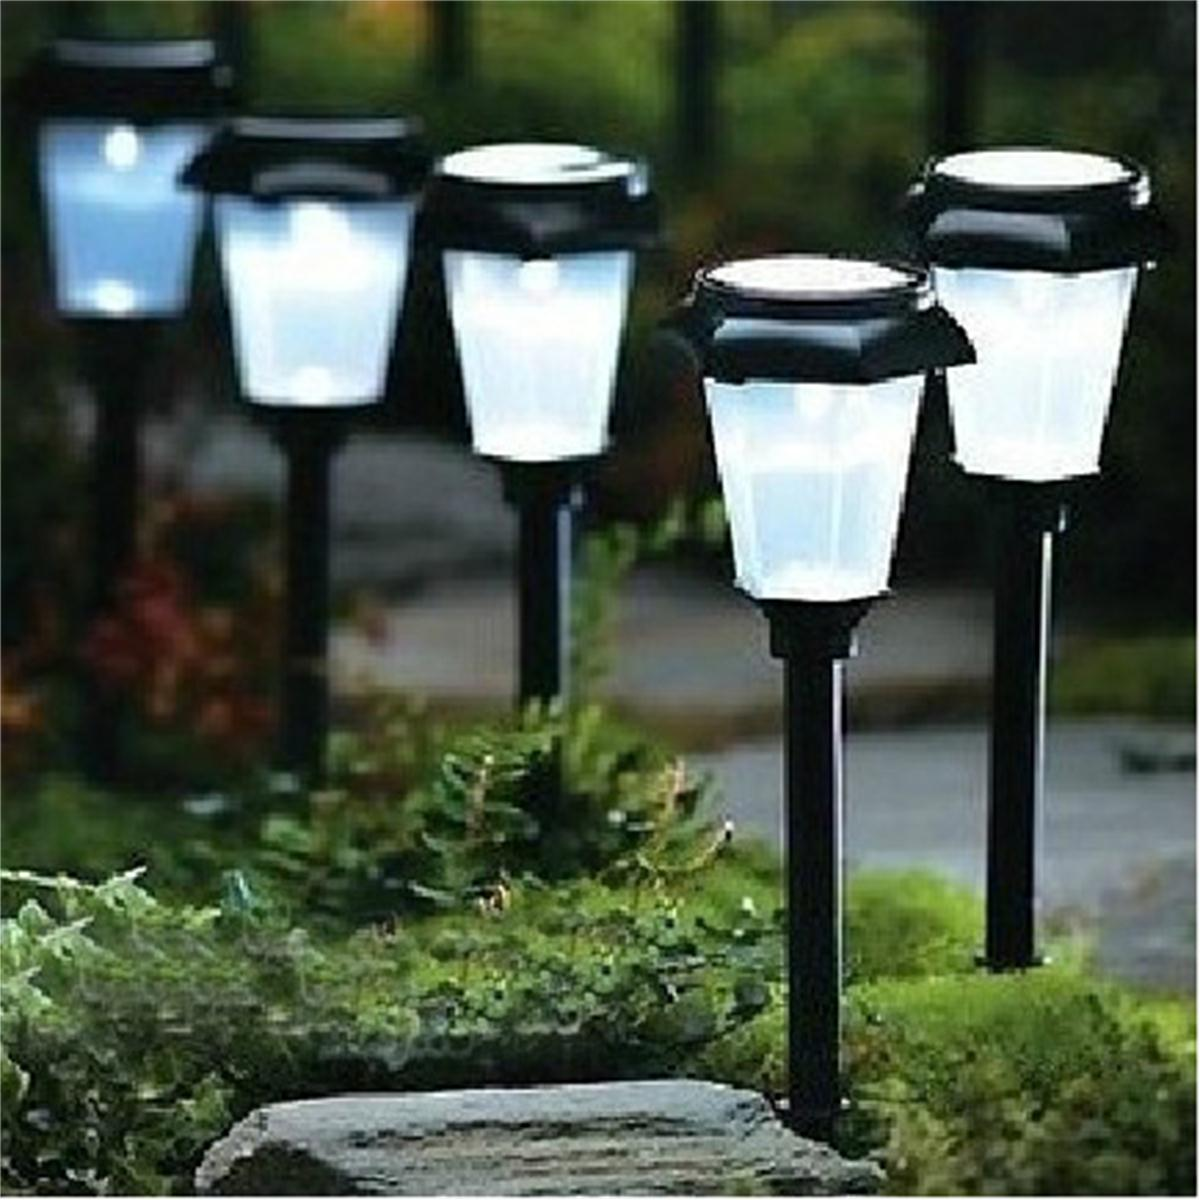 Solar power led light 3 color changing garden outdoor landscape stake path lamp lazada singapore for Solar garden stakes color changing